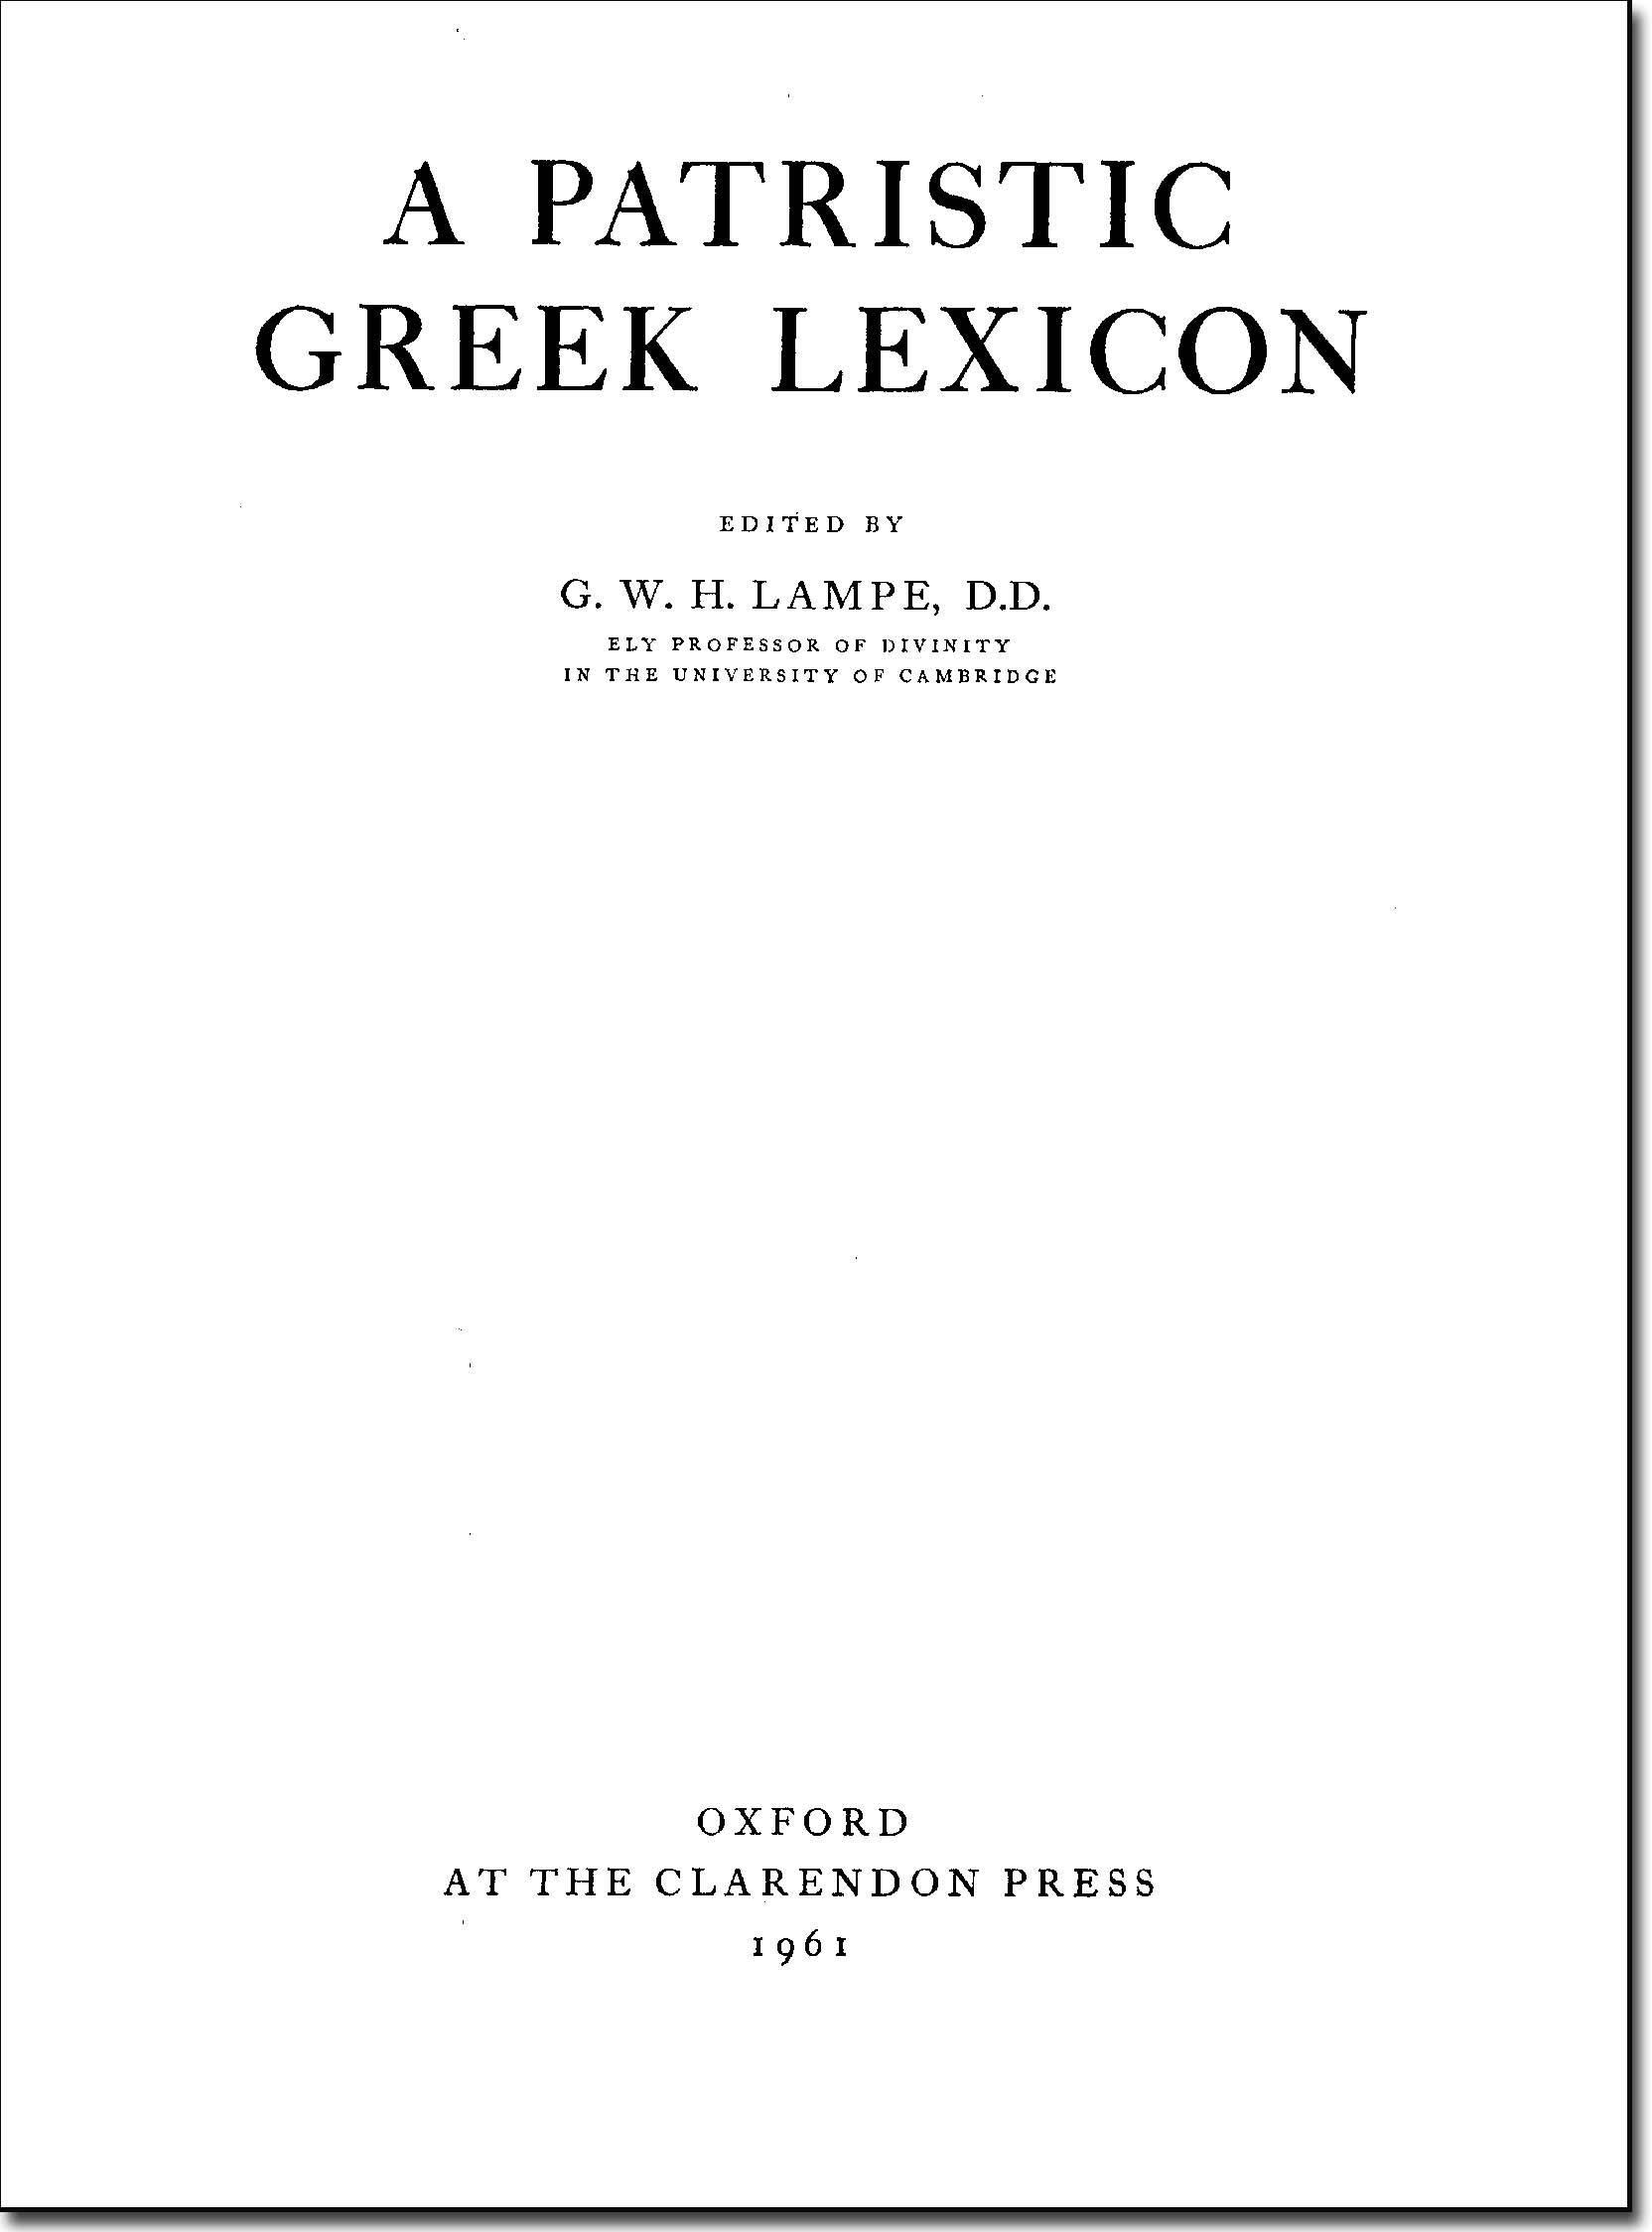 Lampe, Patristic Greek Lexicon 1961